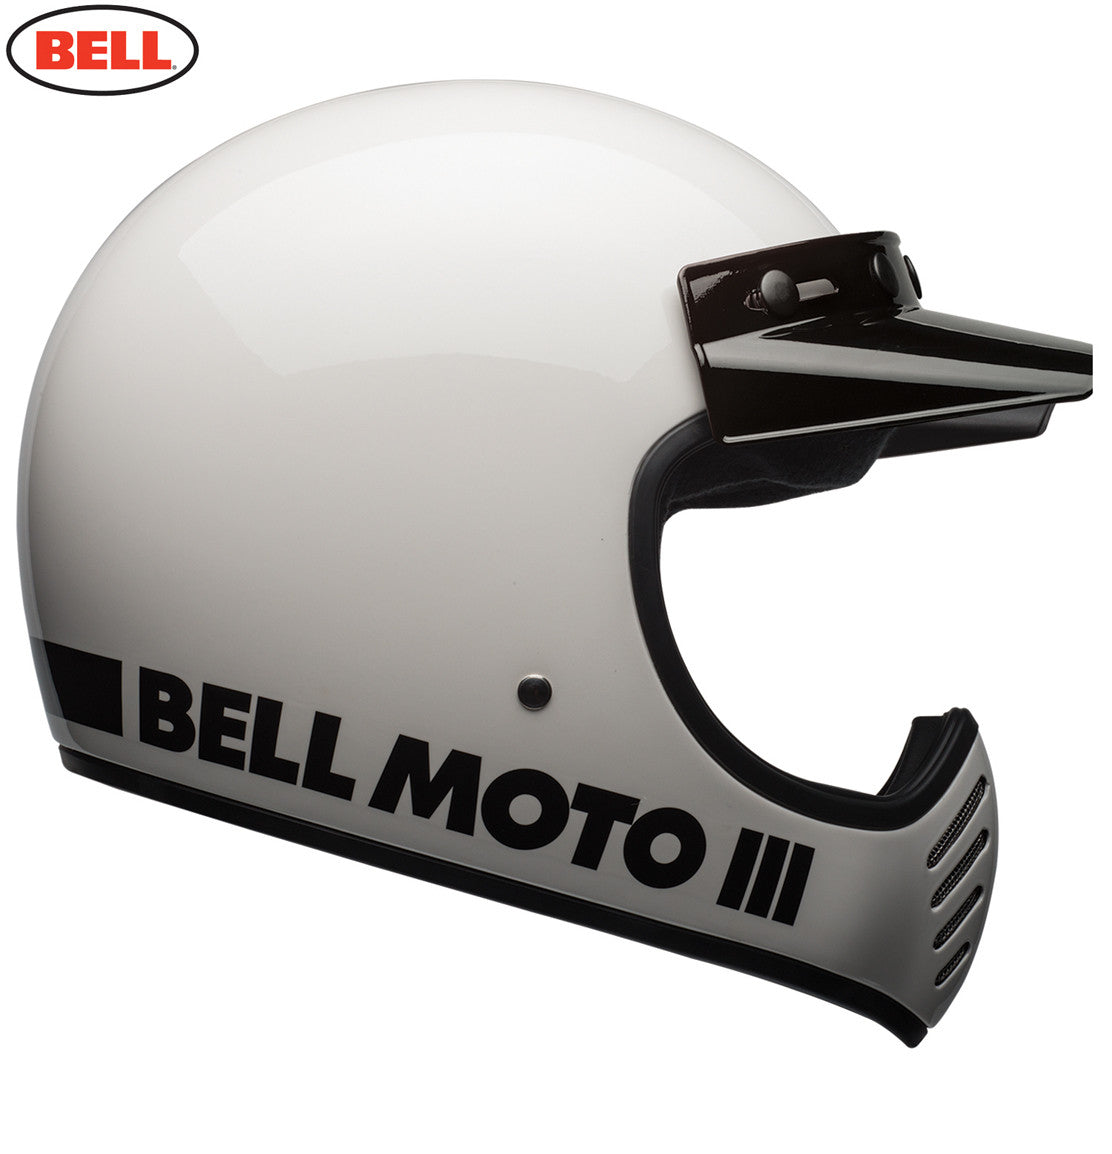 Bell Moto 3 - Classic White Motorcycle helmet